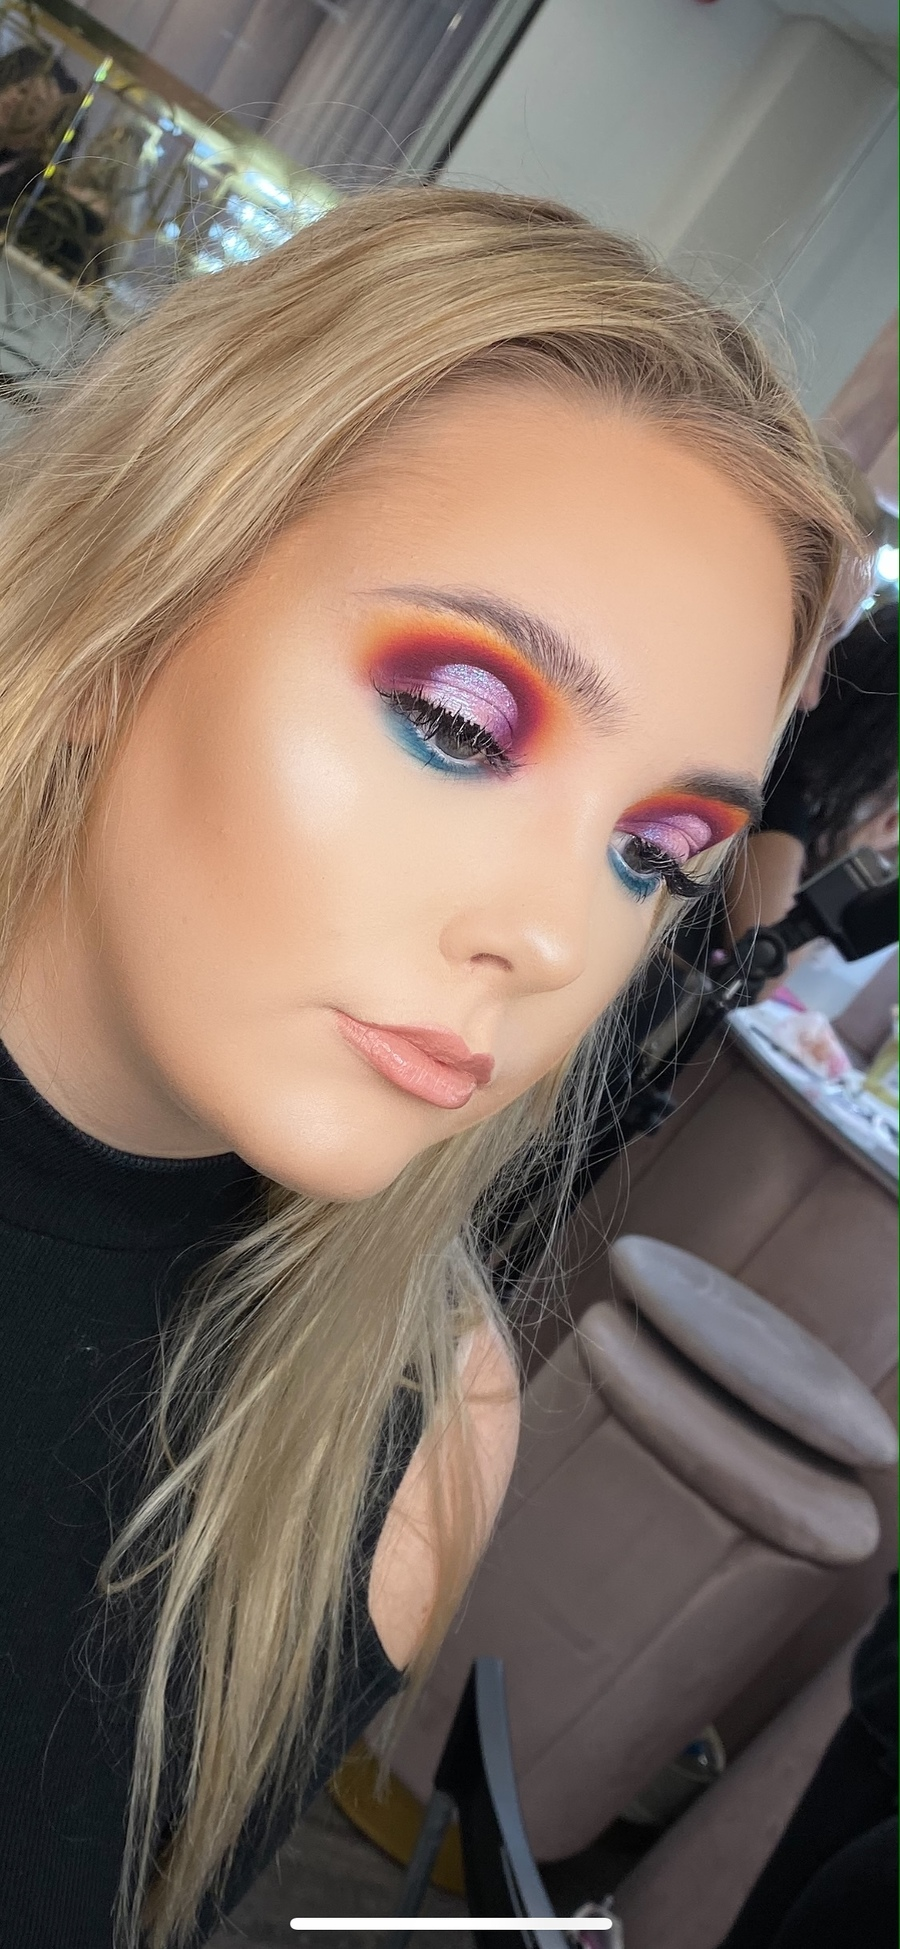 Makeup by Louisemua / Uploaded 23rd March 2020 @ 09:16 PM